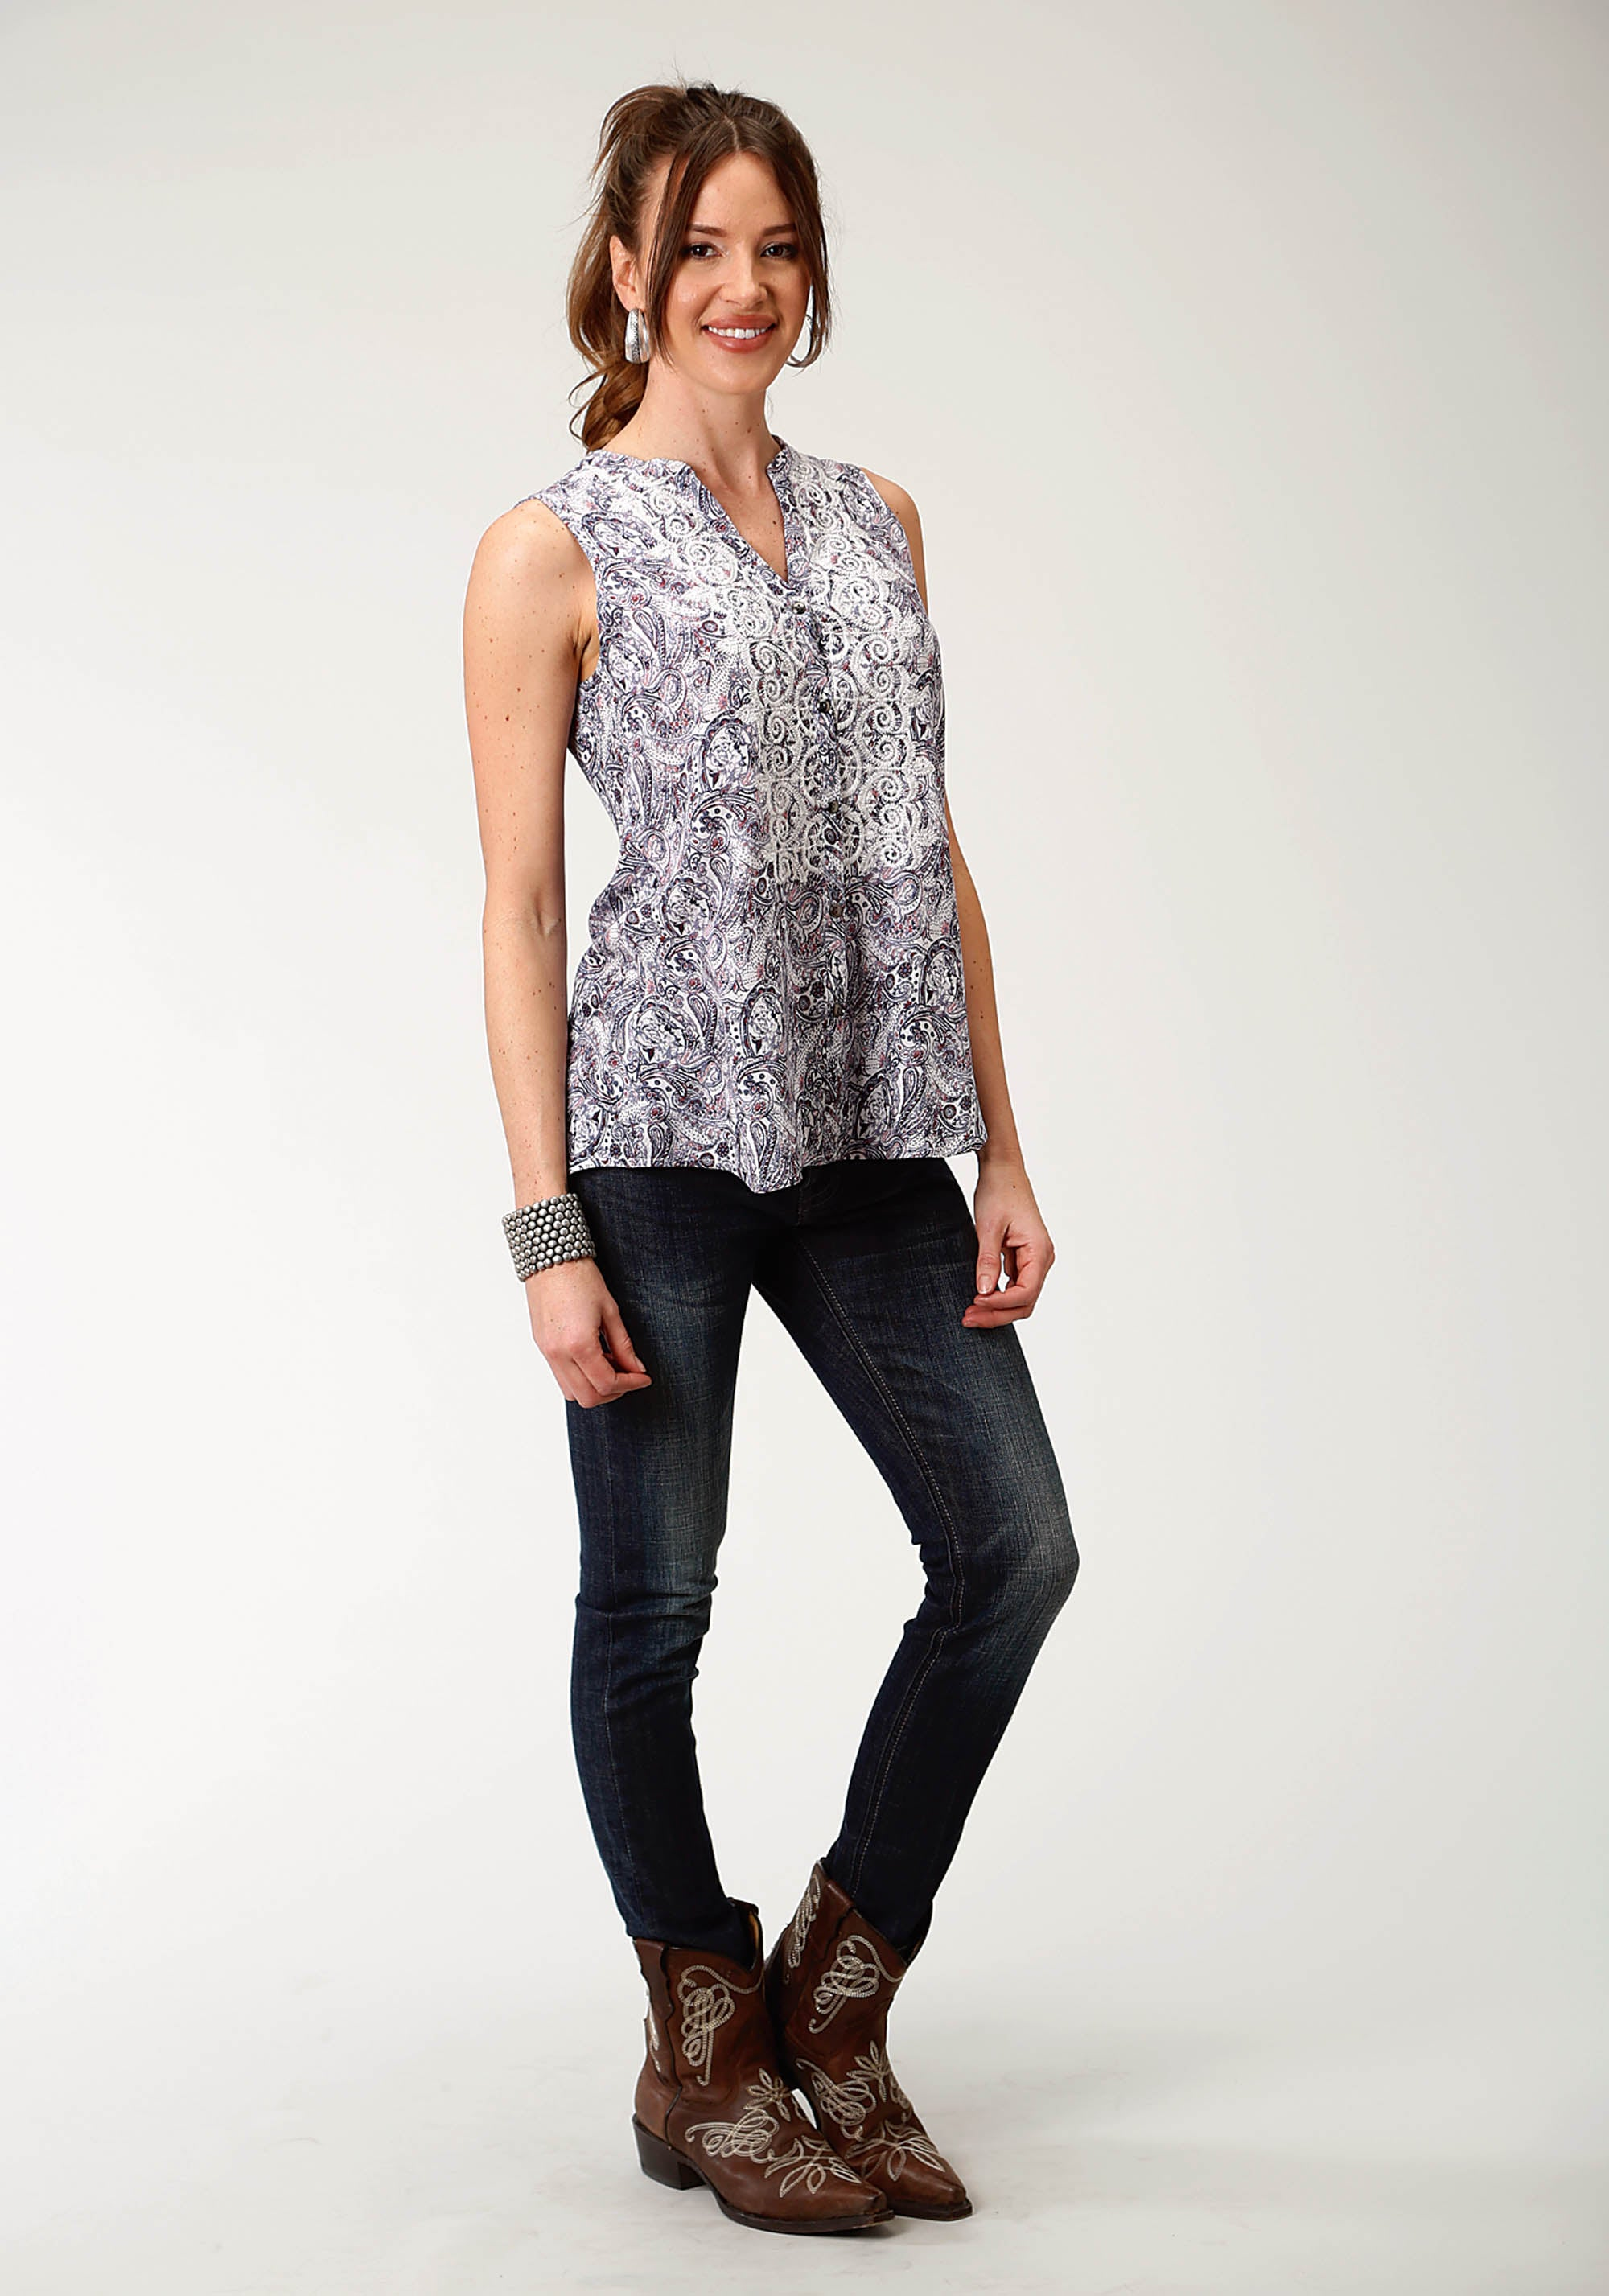 ROPER WOMENS BLUE 2419 PAISLEY PRINTED RAYON SLVLS TOP STUDIO WEST COLLECTION- SPRING MAGIC SLEEVELESS